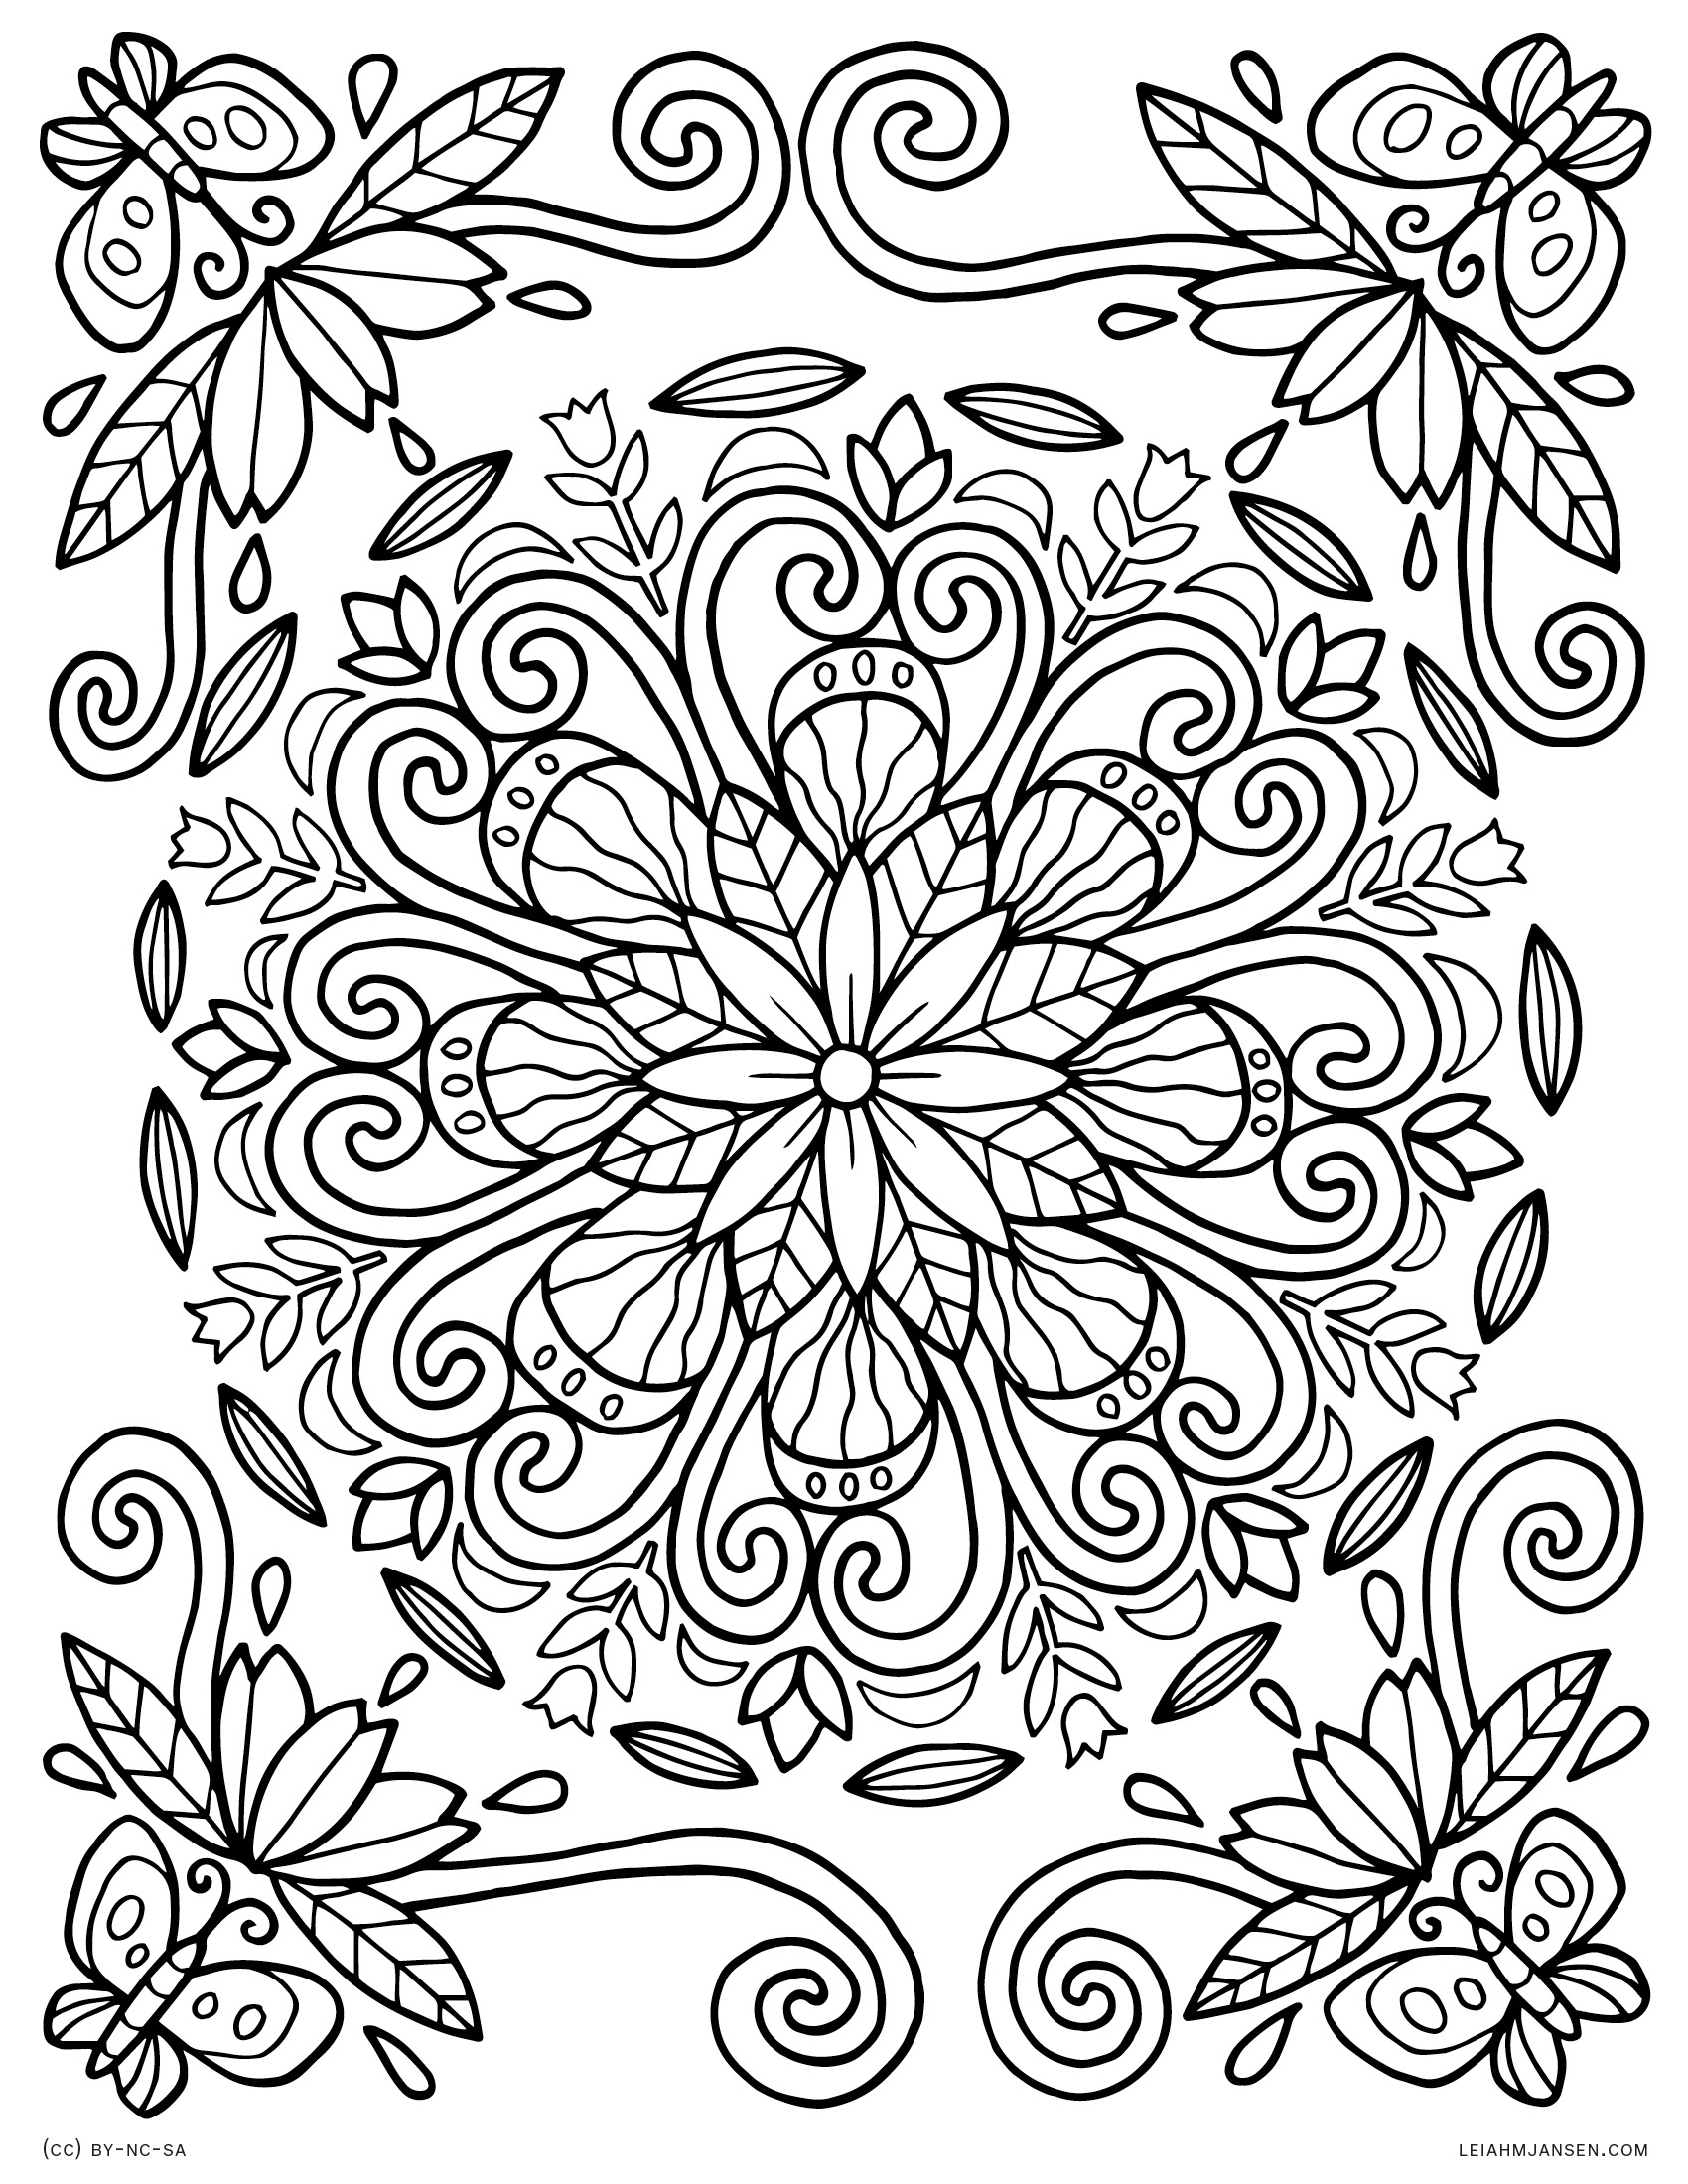 This is a photo of Fall Coloring Pages Printable intended for spring summer